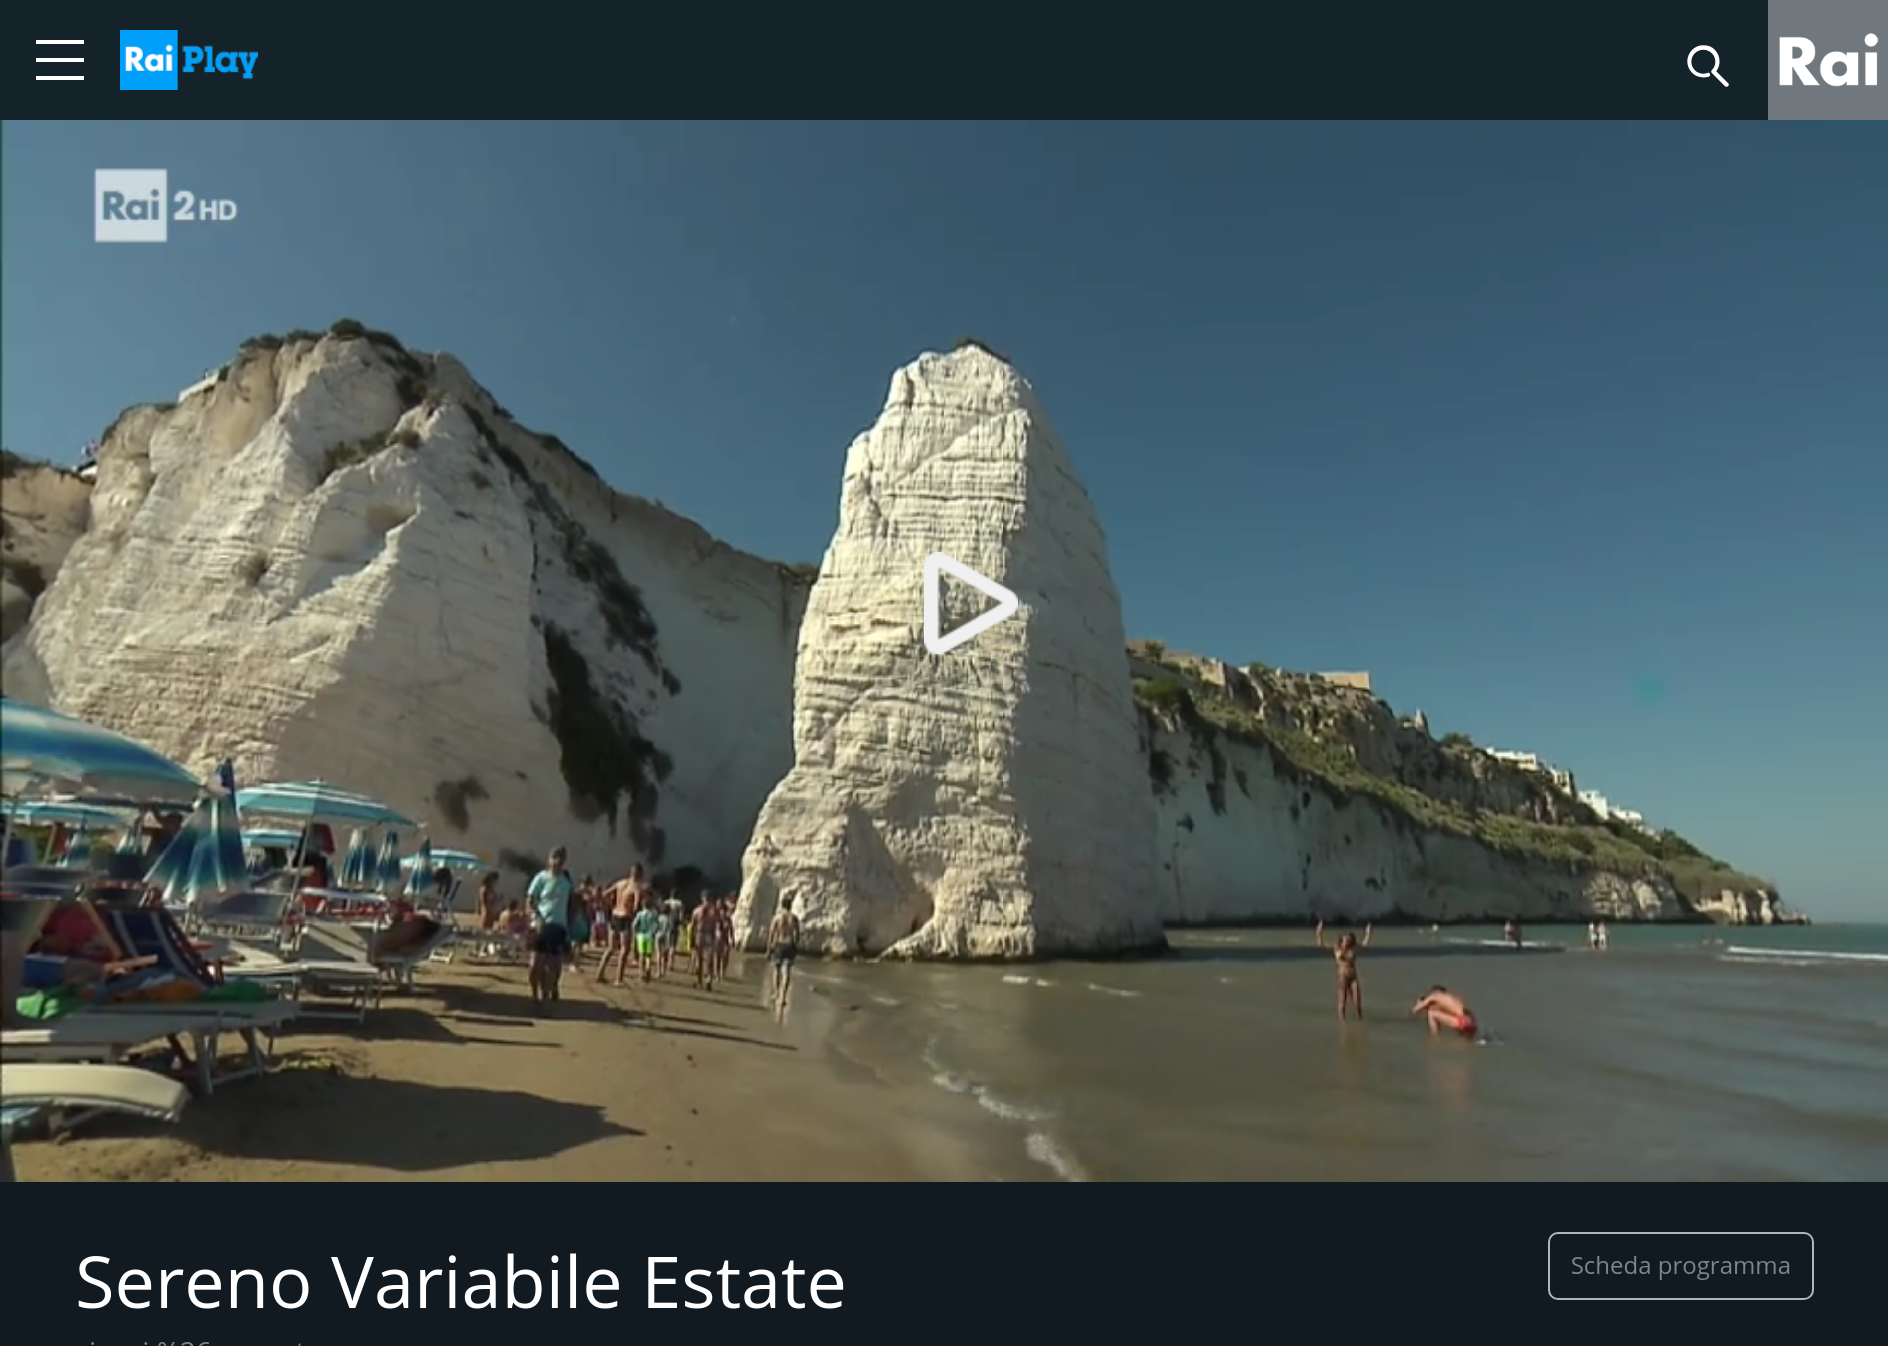 www.raiplay.it_video_2018_08_sereno-variabile-estate-24adf06a-0a78-47ff-985b-f4e59a62be36.html_iframe